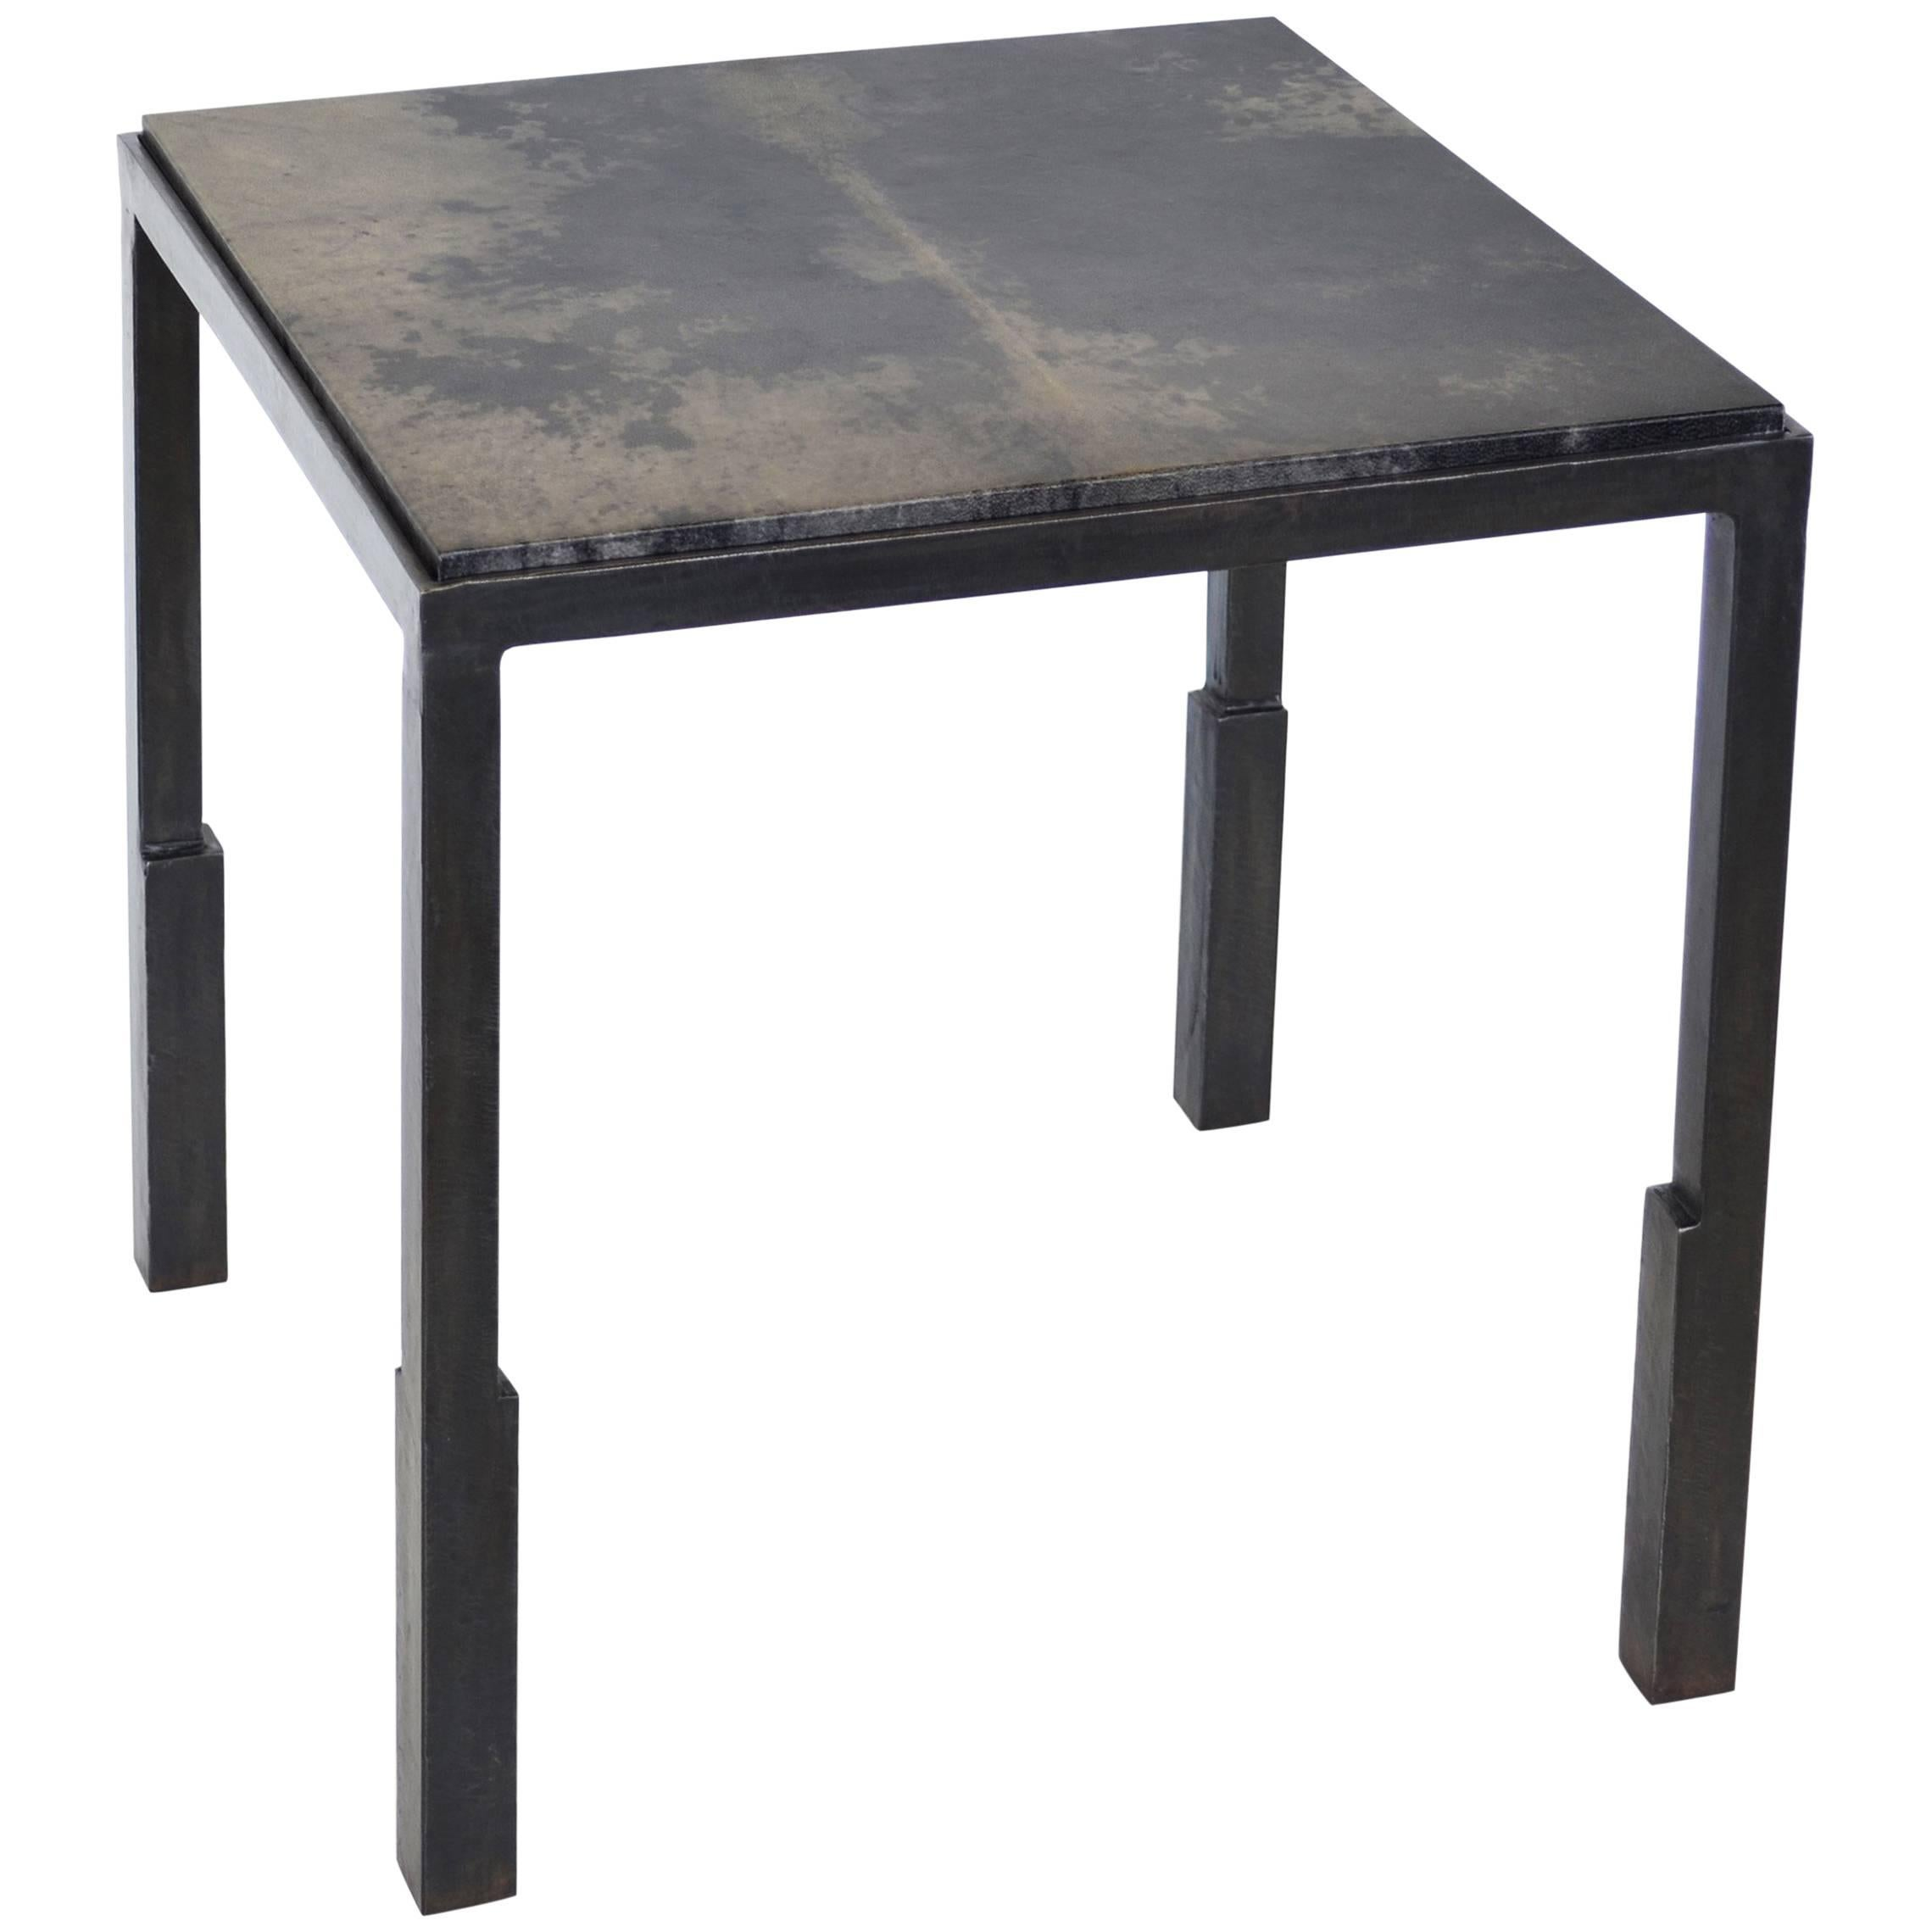 Parchment Side Table Modern Geometric Stark Thick Handmade Blackened Steel Waxed